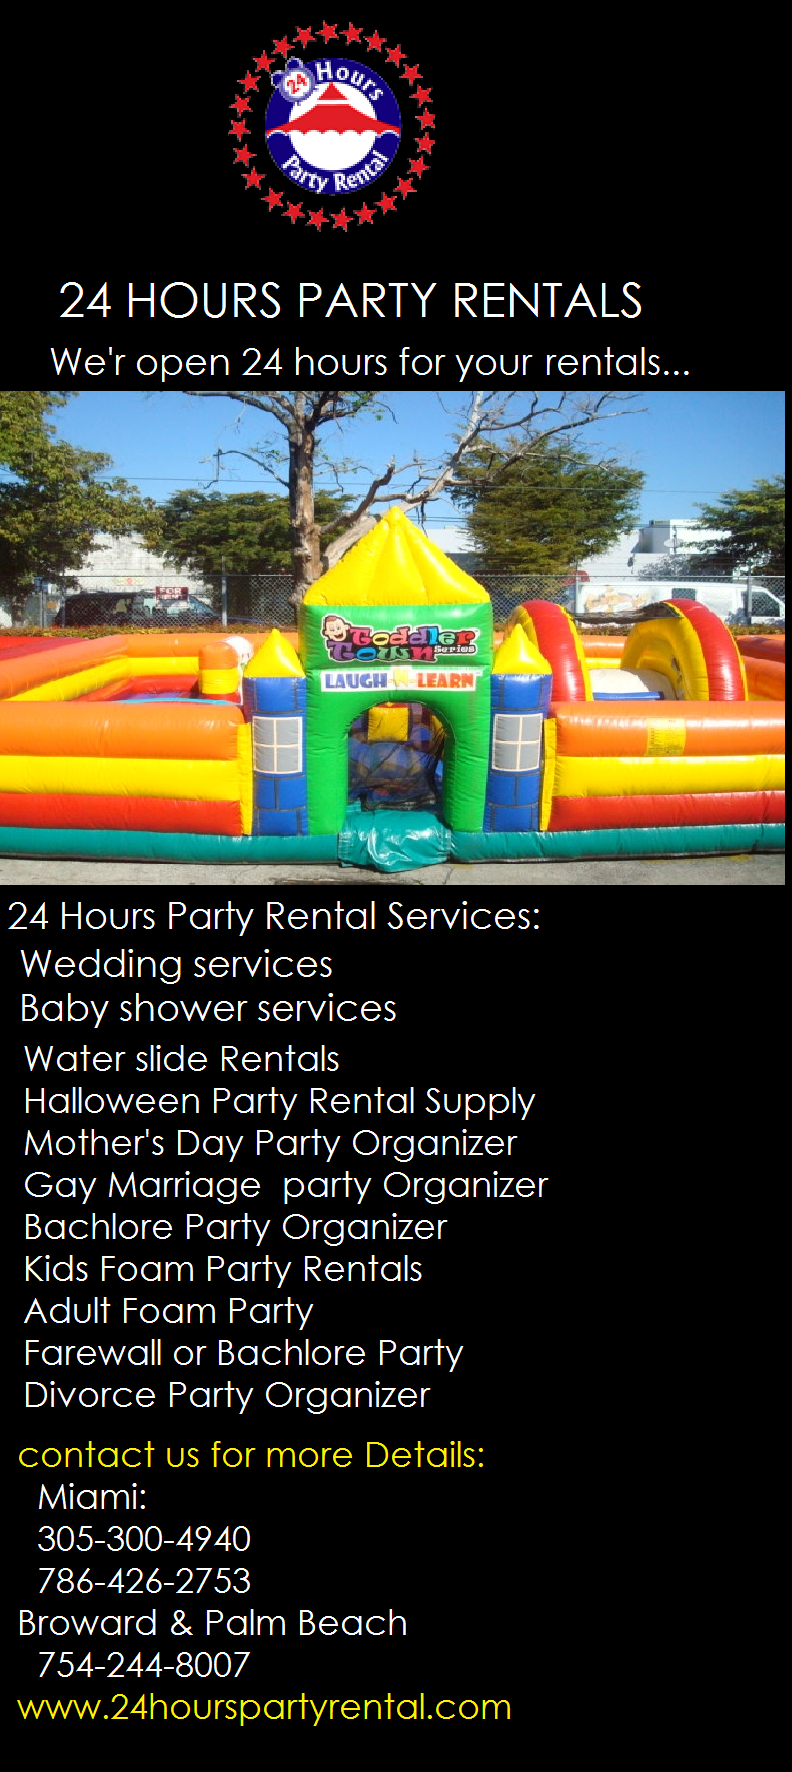 24 Hours Party Rental Provides Various Type Of Party Rentals Like Wedding Rentals Bounce Houses Interact Party Rentals Party Rental Supplies Organization Kids